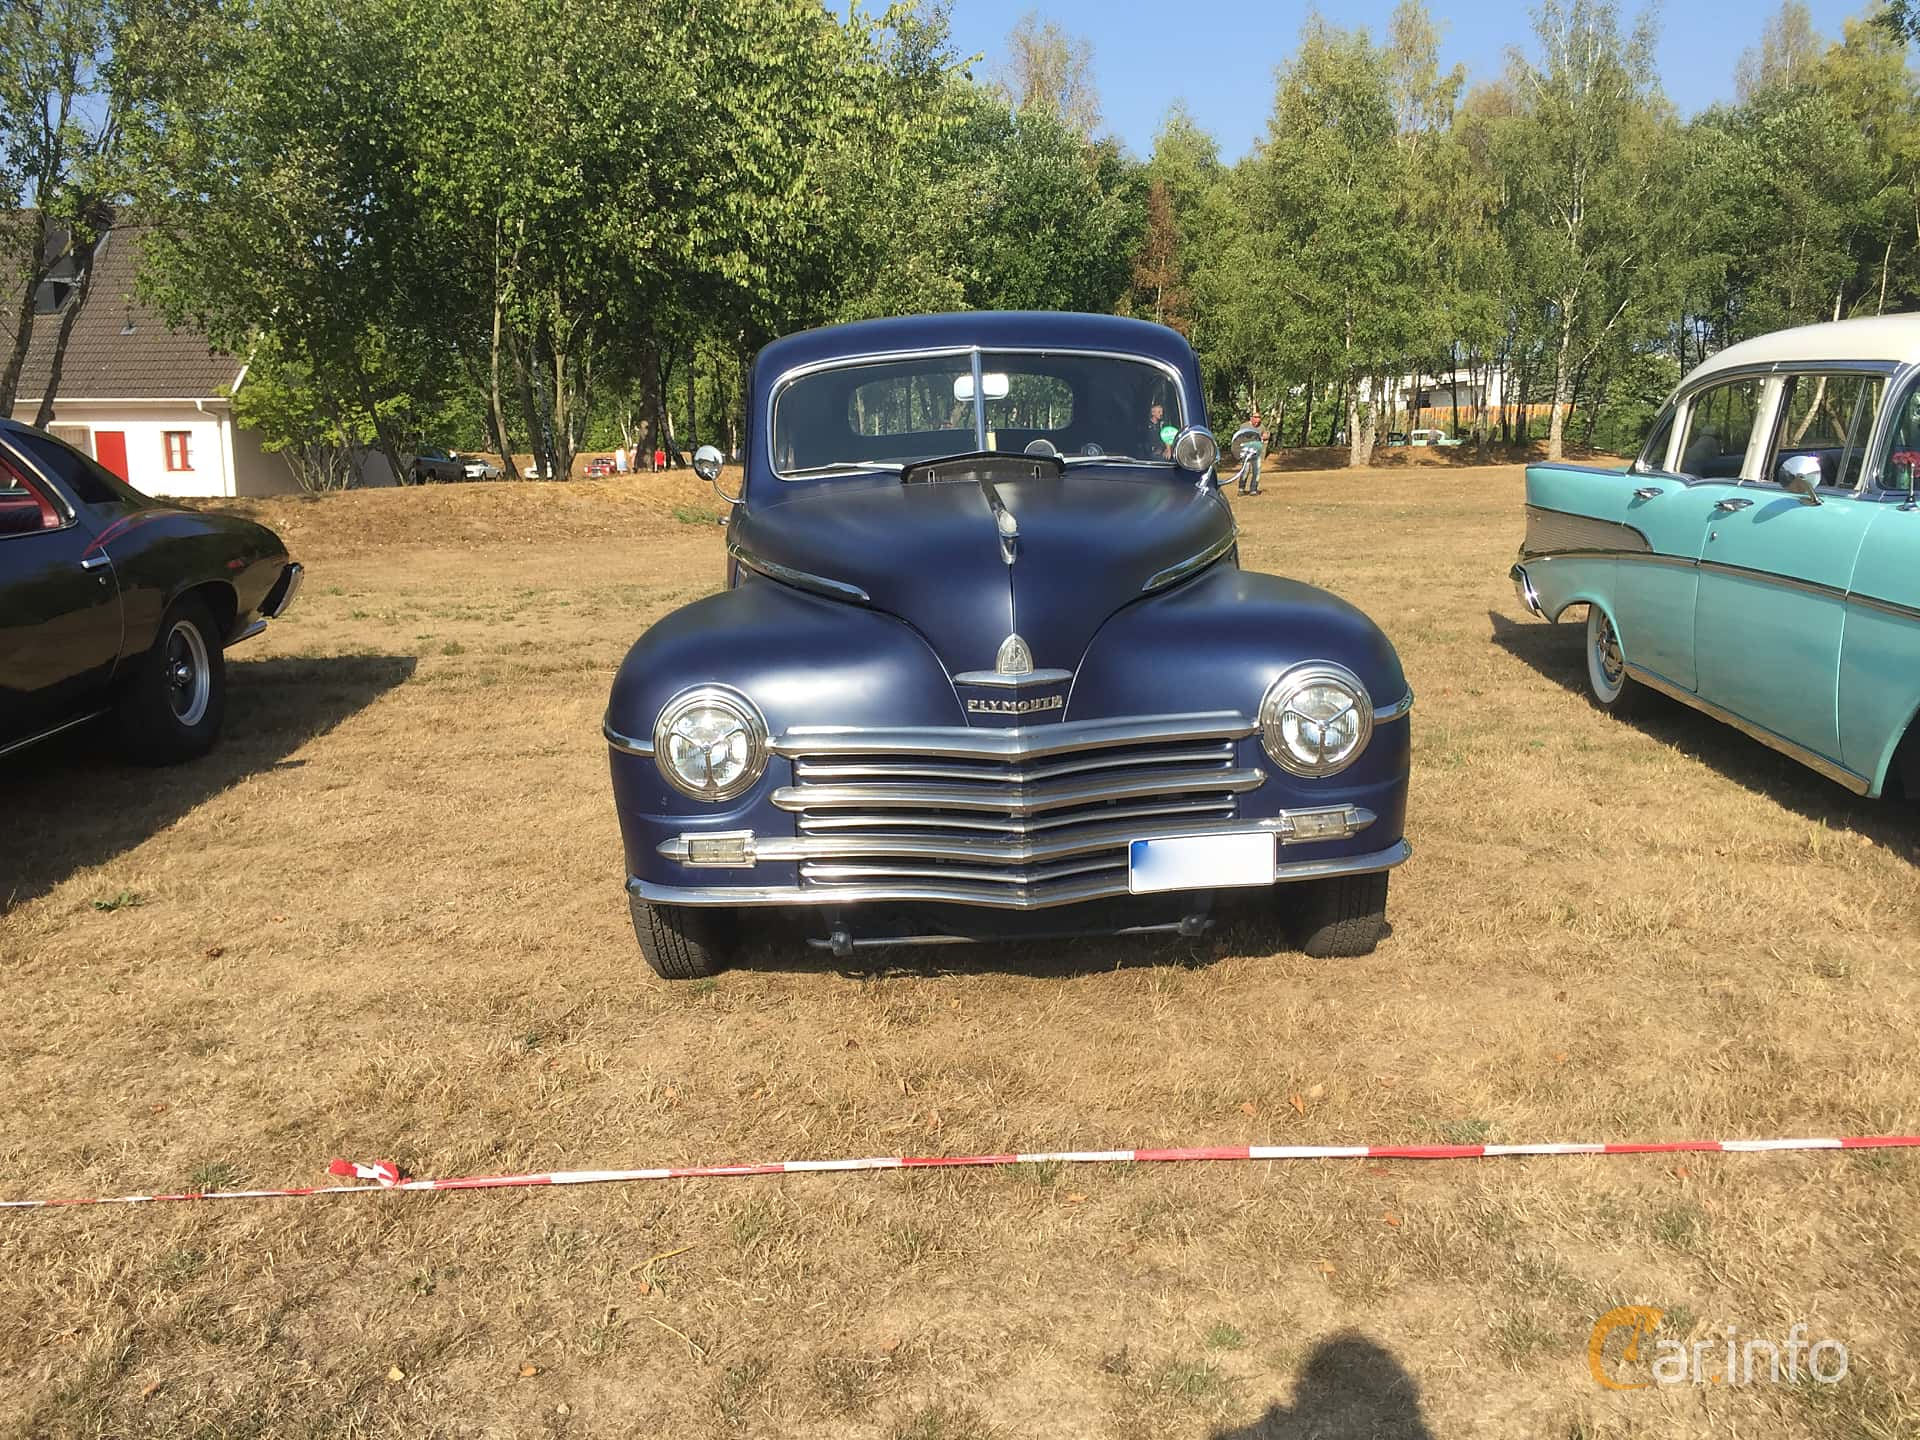 Fram av Plymouth Deluxe Coupé 3.6 Manual, 95ps, 1948 på Eddys bilträff Billesholm Augusti 2018